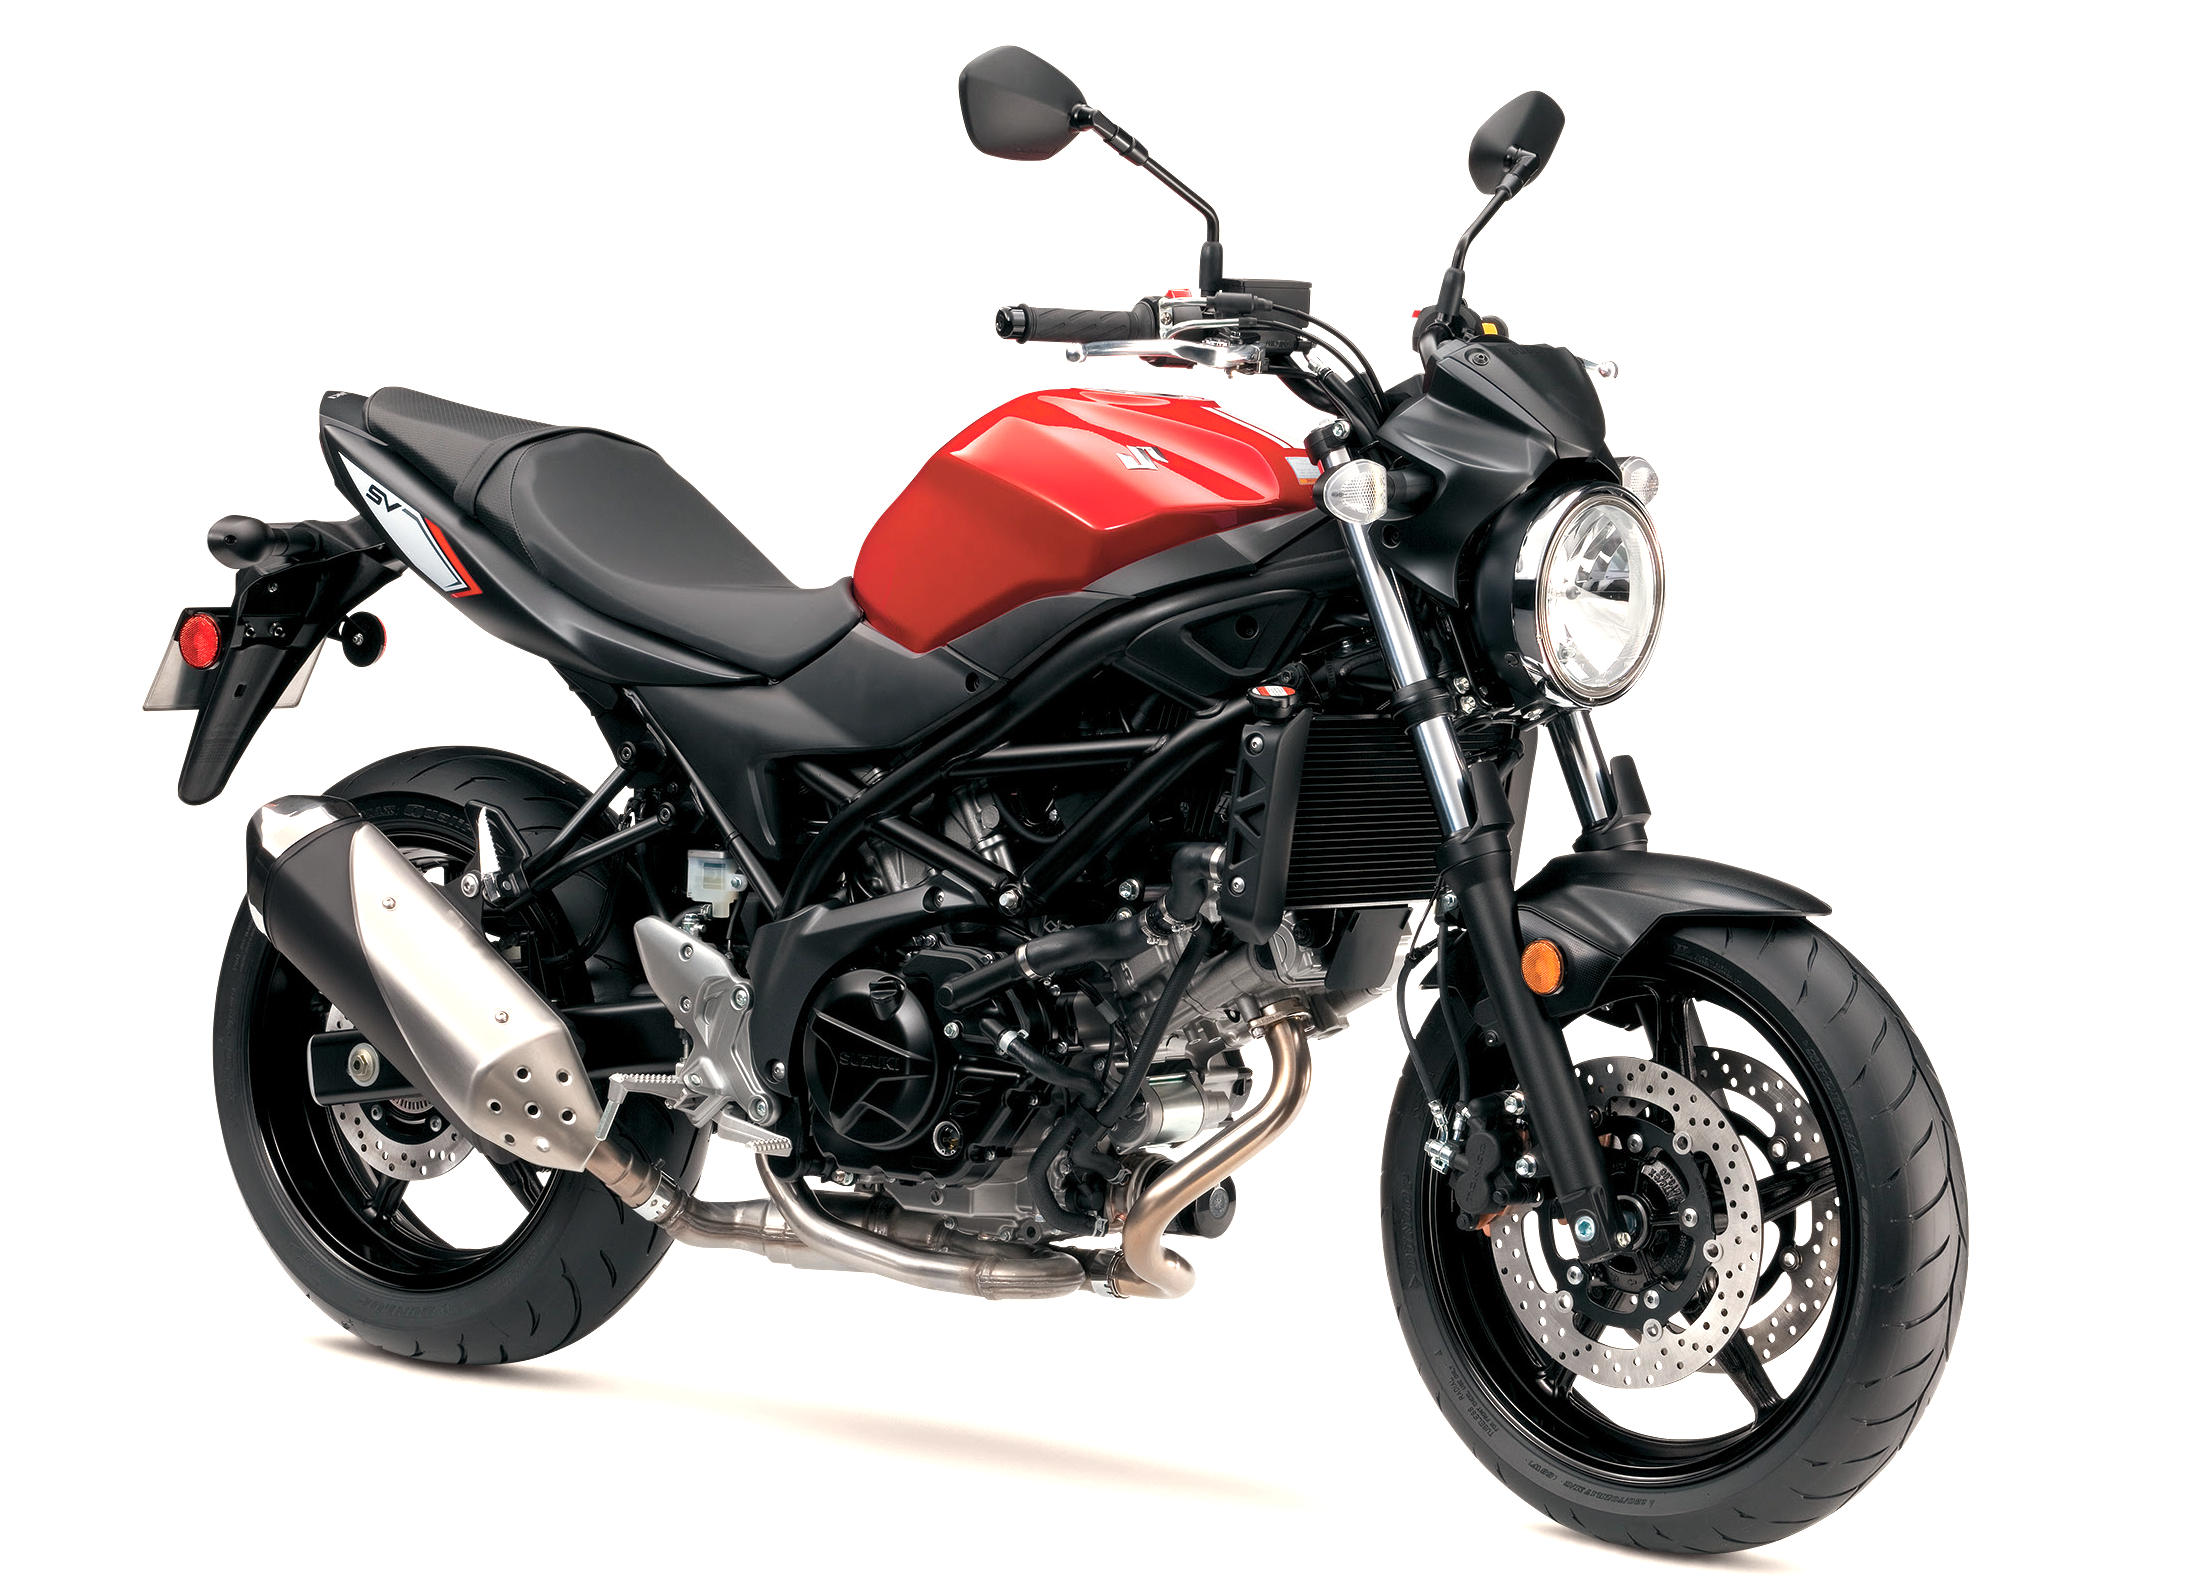 Earlier Today Suzuki Announced Pricing And Availability For The 2017 SV650 ABS Models Both Bikes Will Be In US Dealers Next Month With